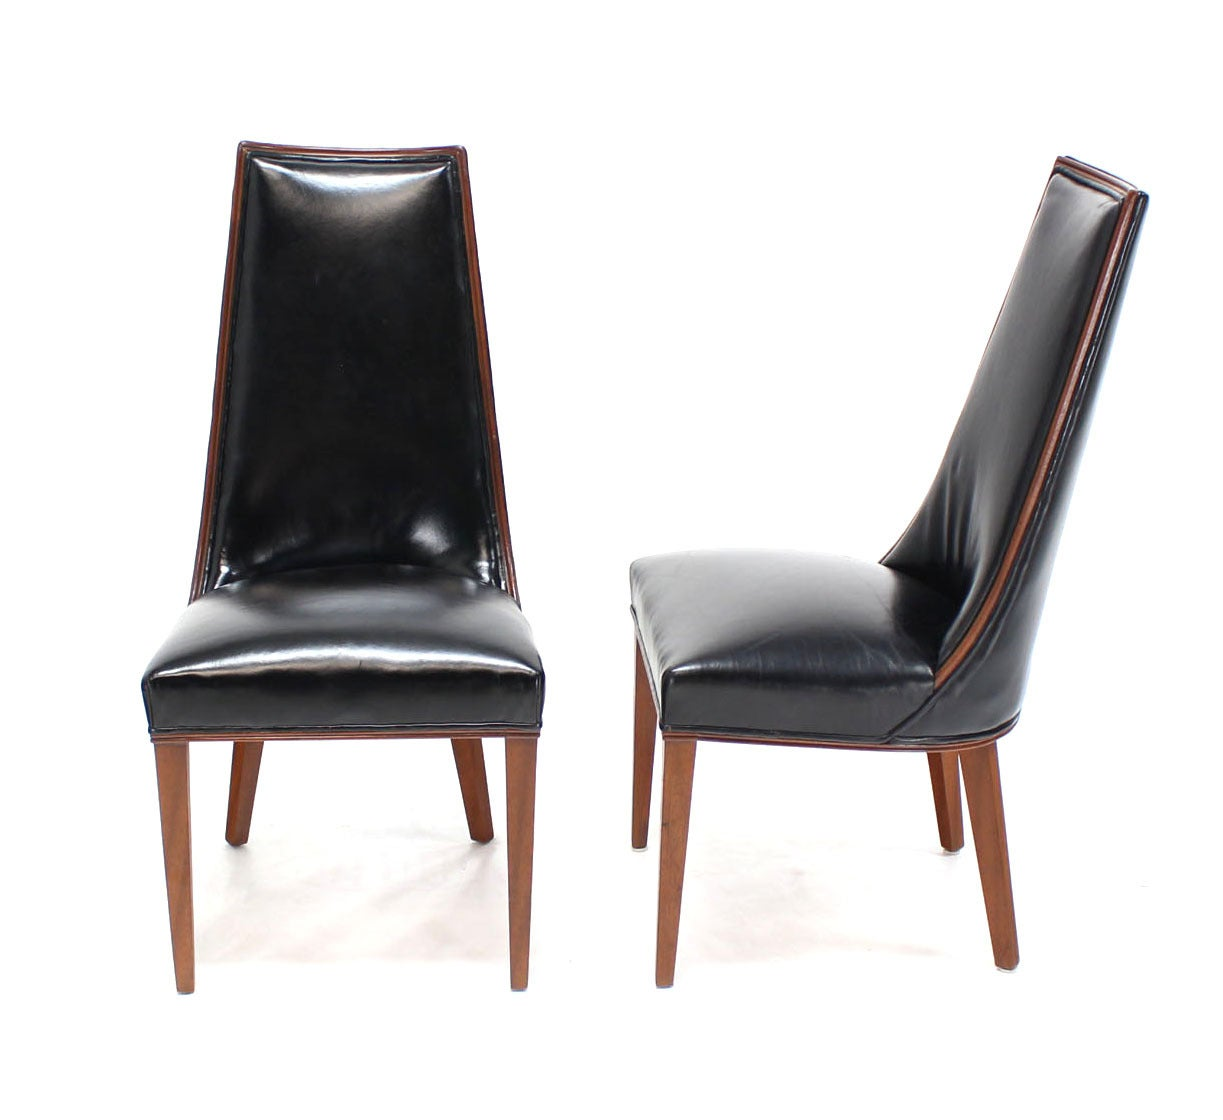 tall dining chairs tan leather set of six back high quality